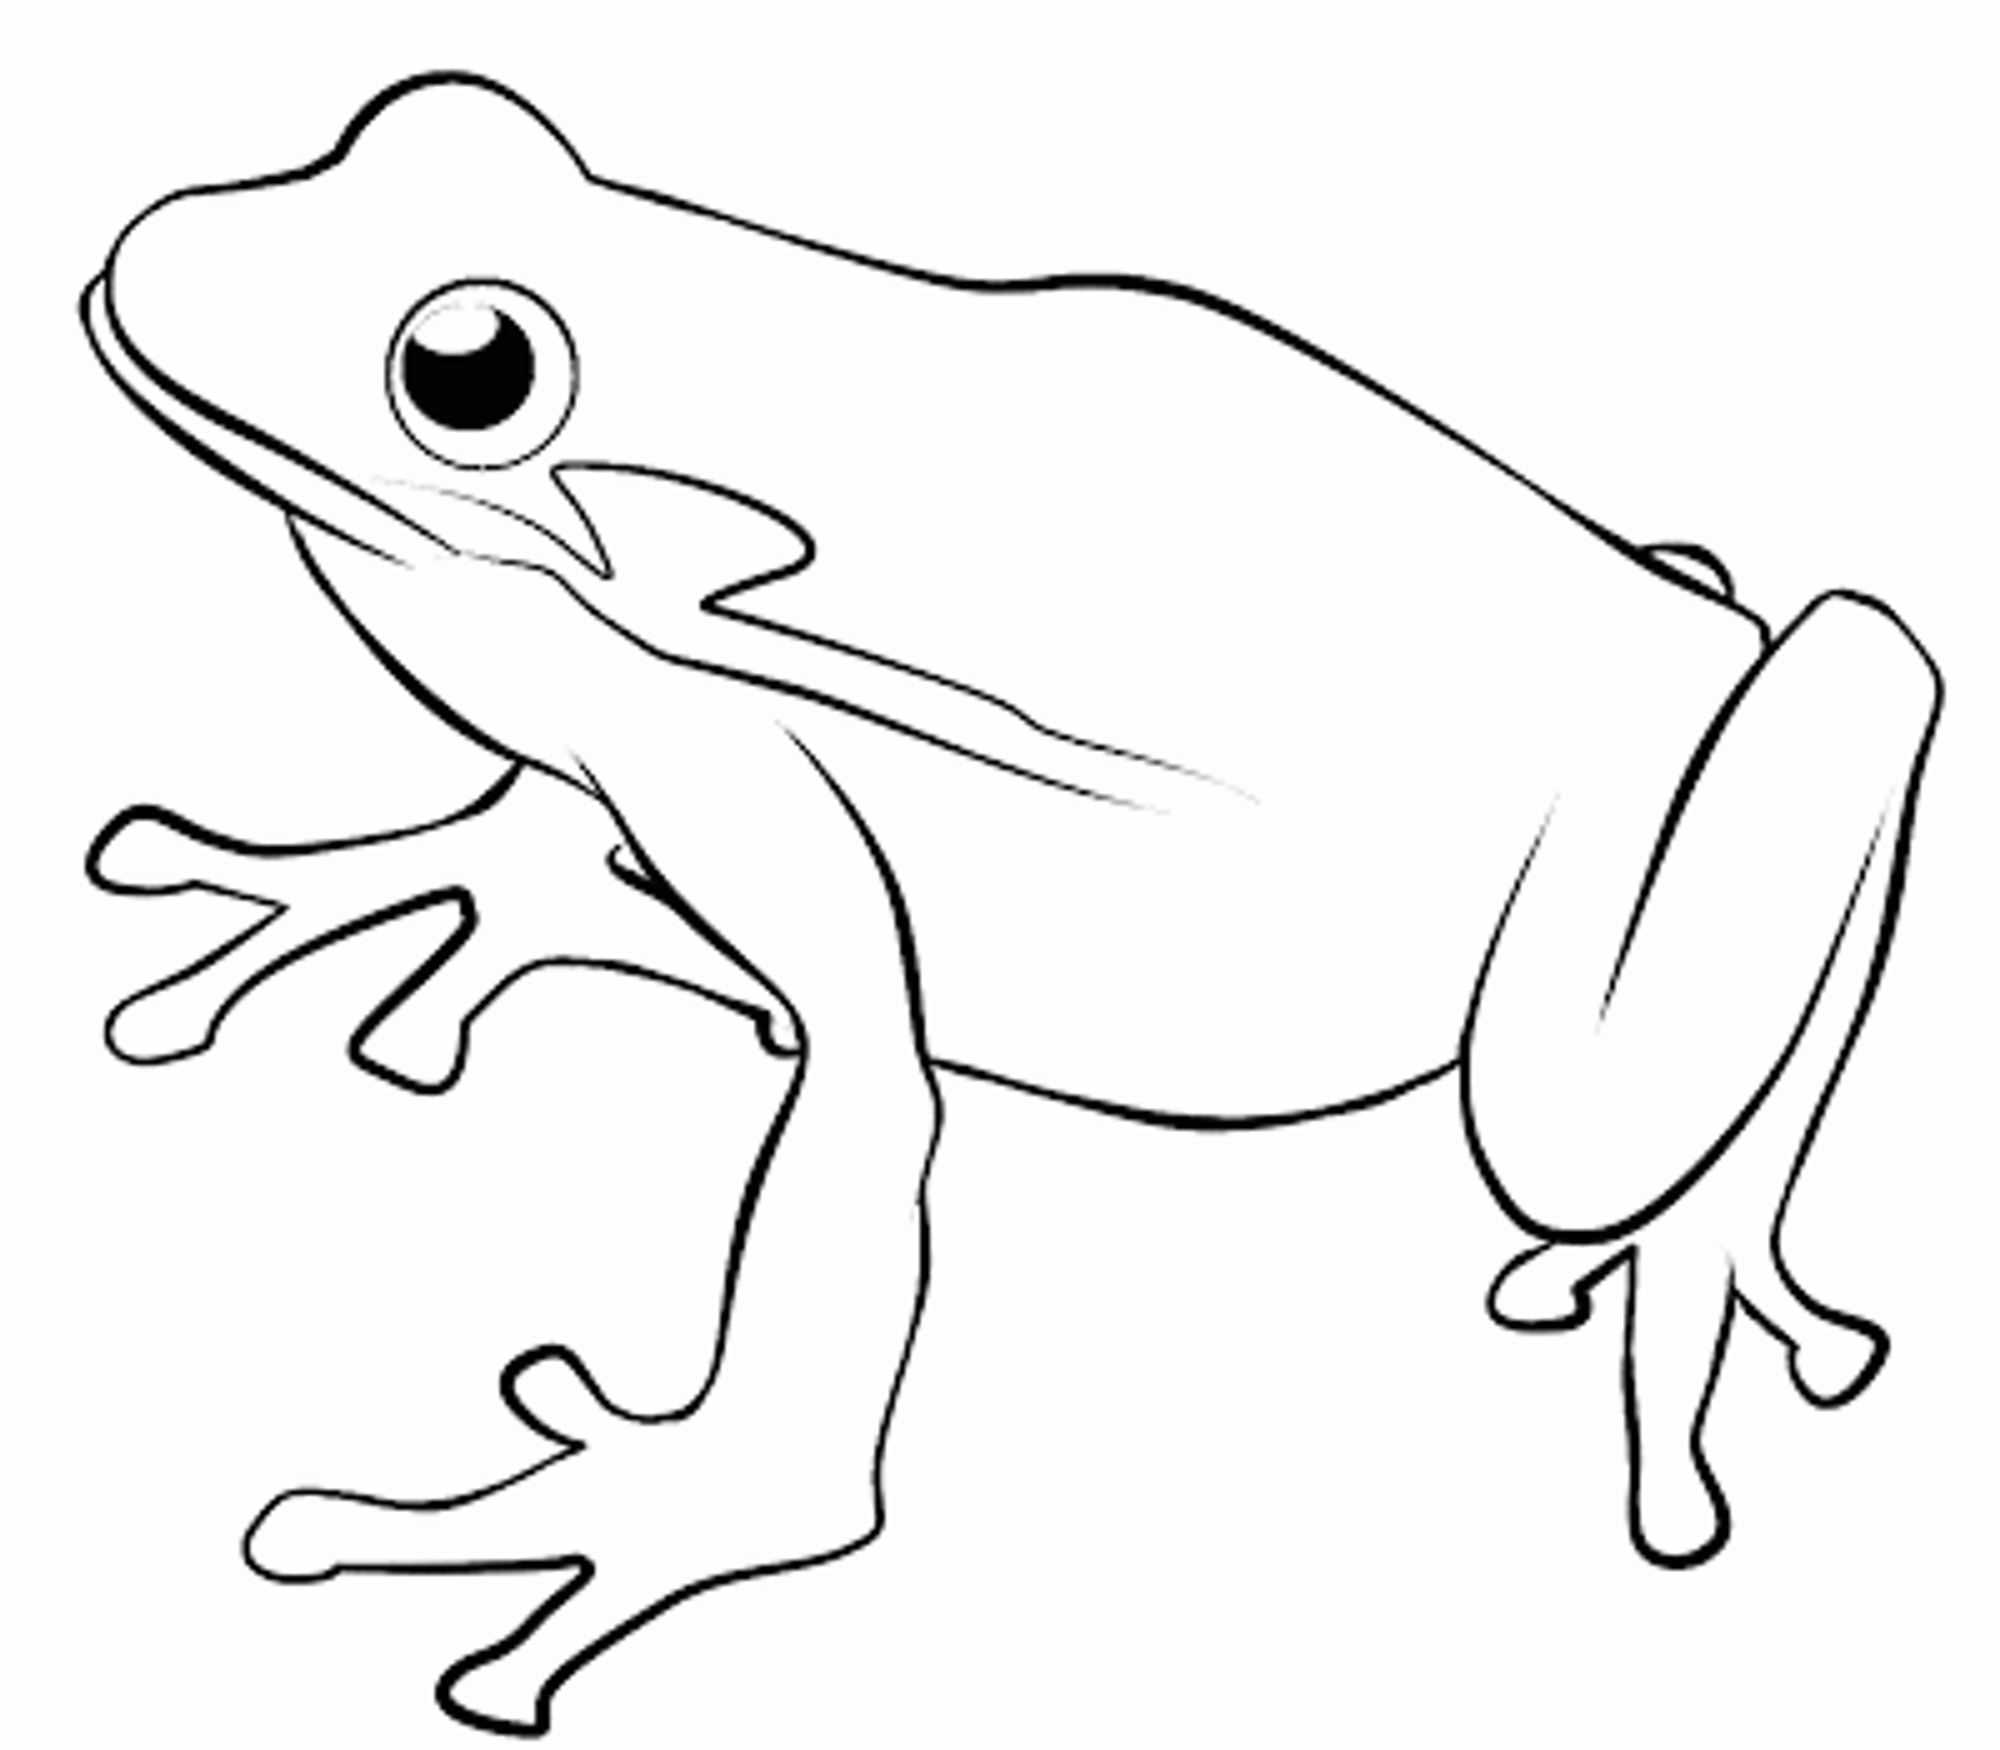 pictures of frogs to color free printable frog coloring pages for kids cool2bkids frogs to pictures of color